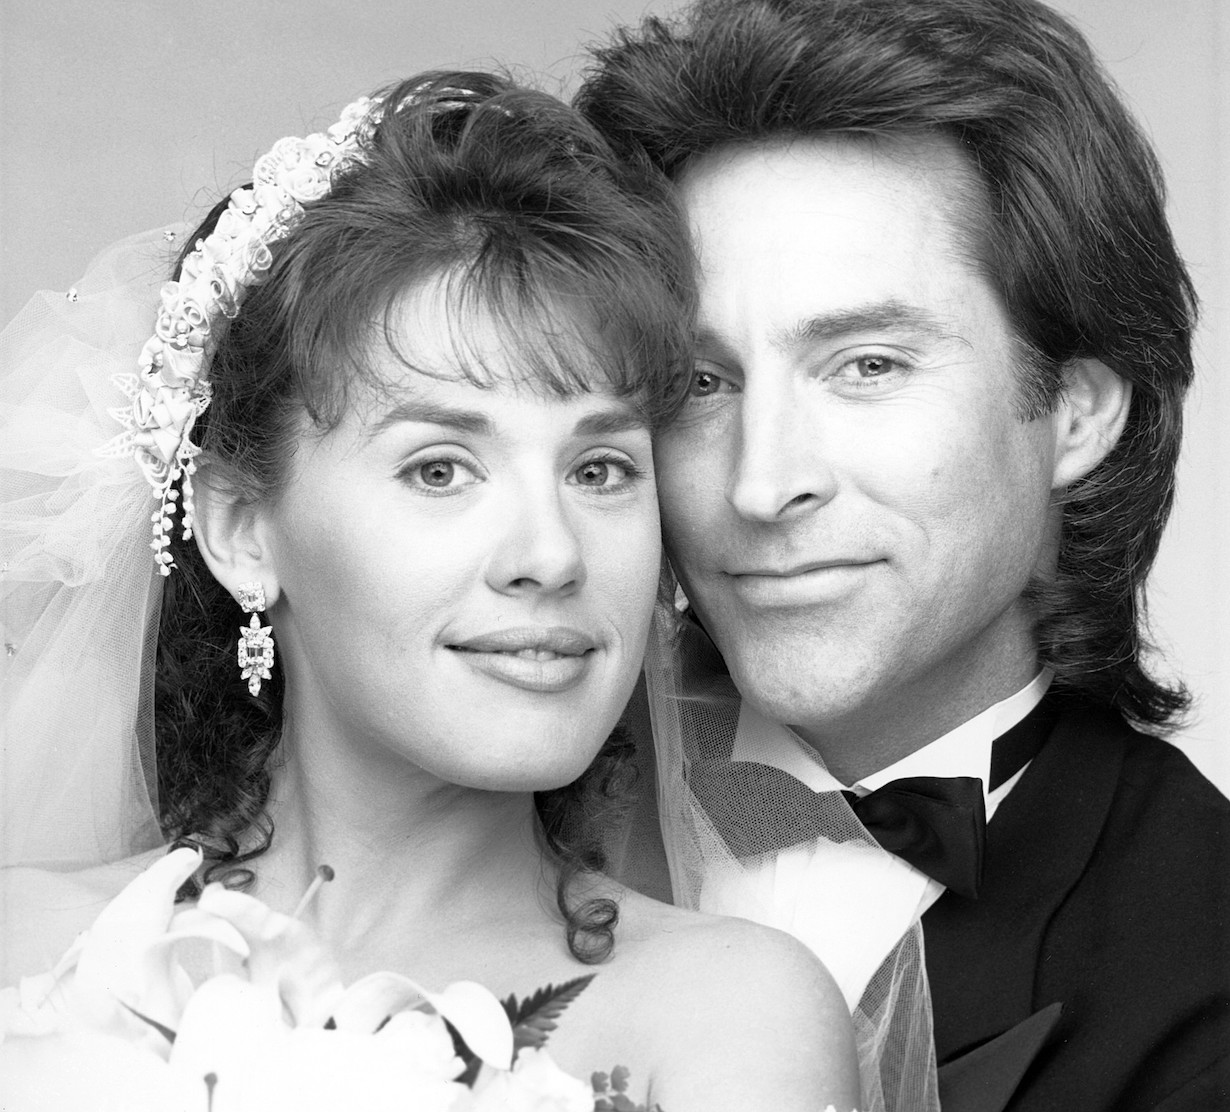 DAYS OF OUR LIVES, from left: Staci Greason, Drake Hogestyn, (1992), 1965- . /©NBC/Courtesy Everett Collection